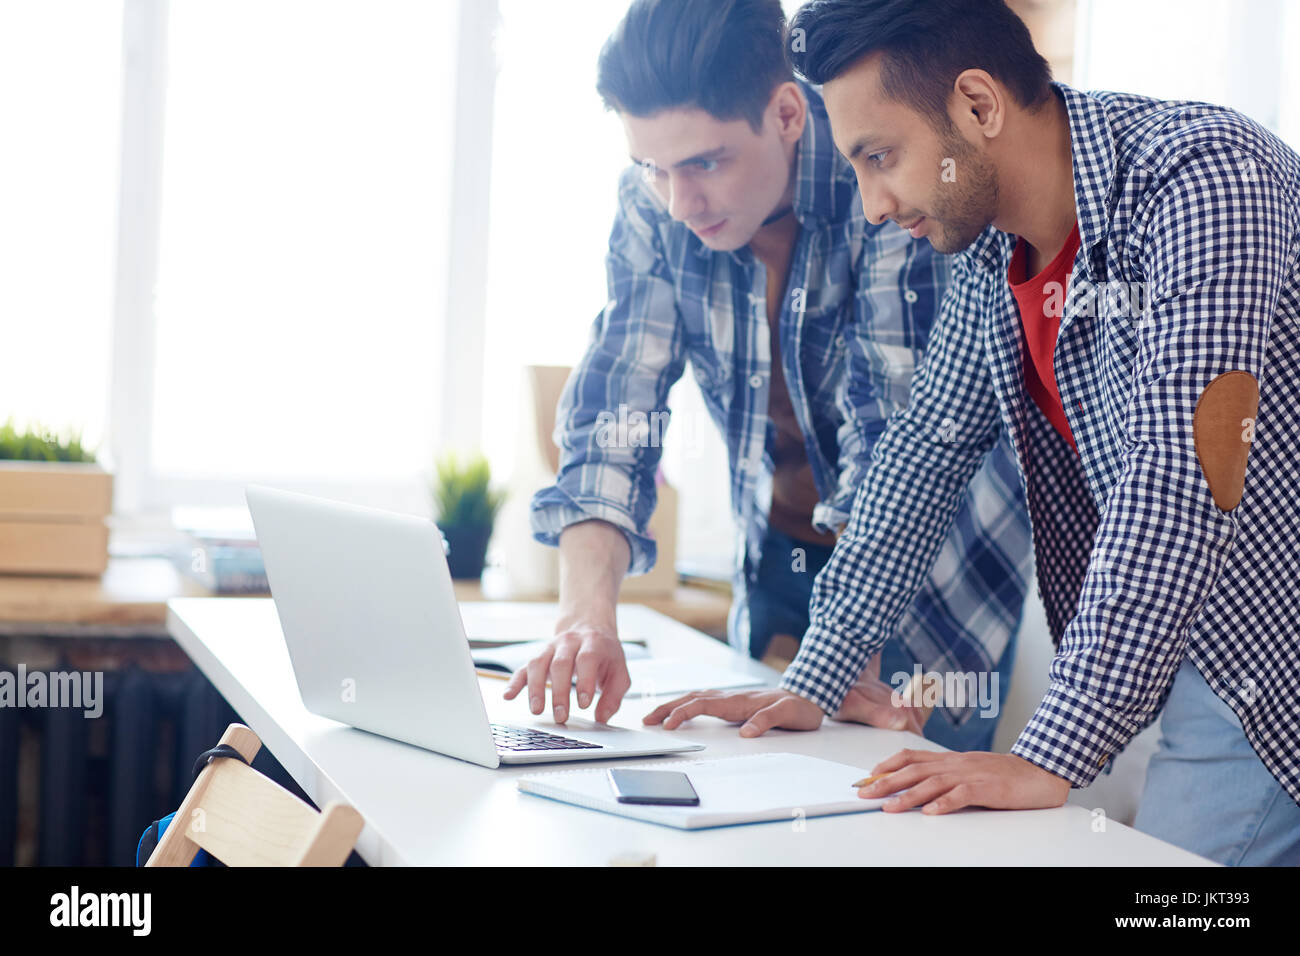 Clever guys reading online data while preparing for conference or exam - Stock Image